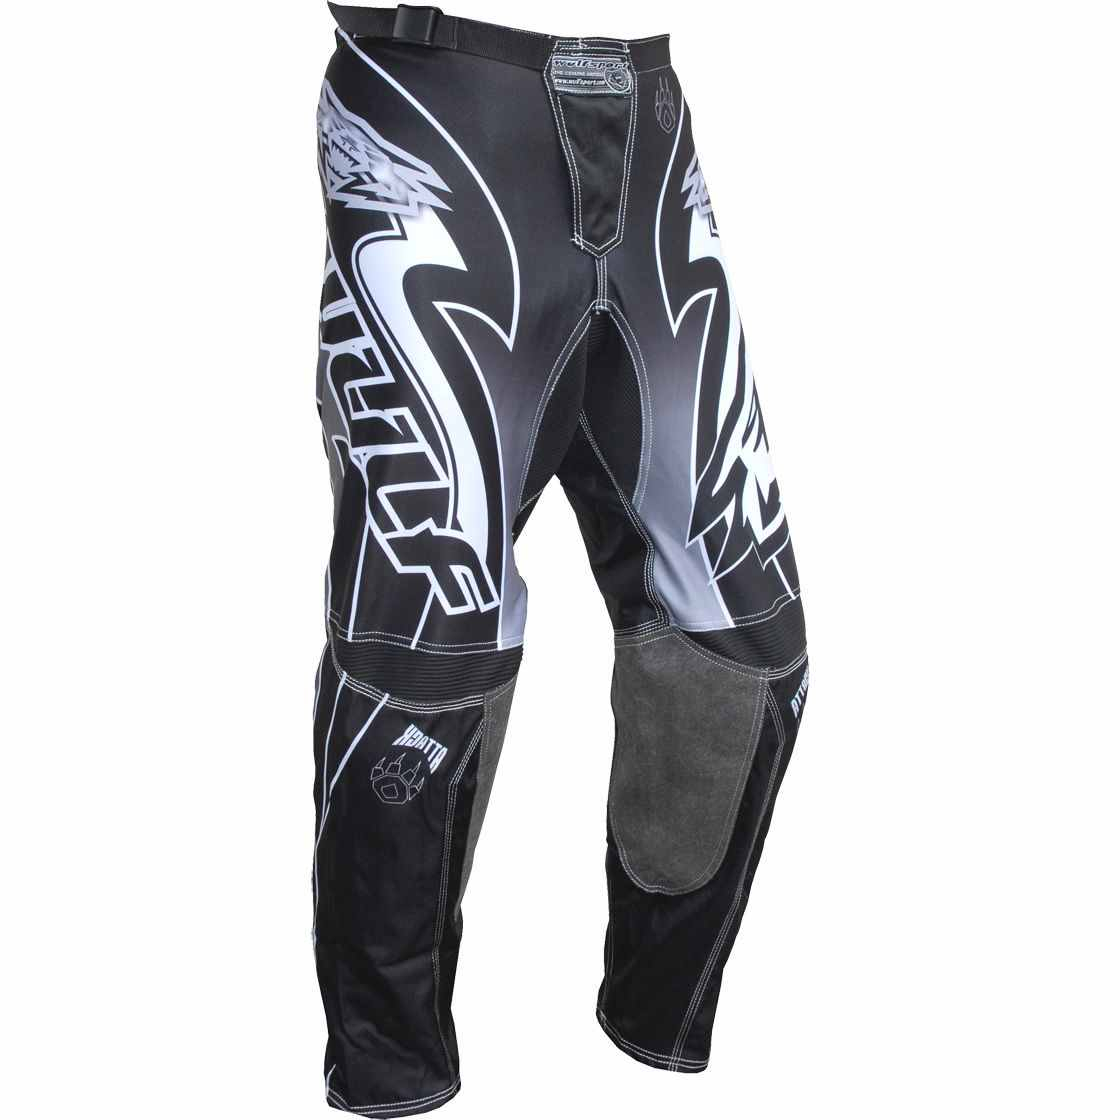 Wulfsport ATTACK Cub Race Pants - Black